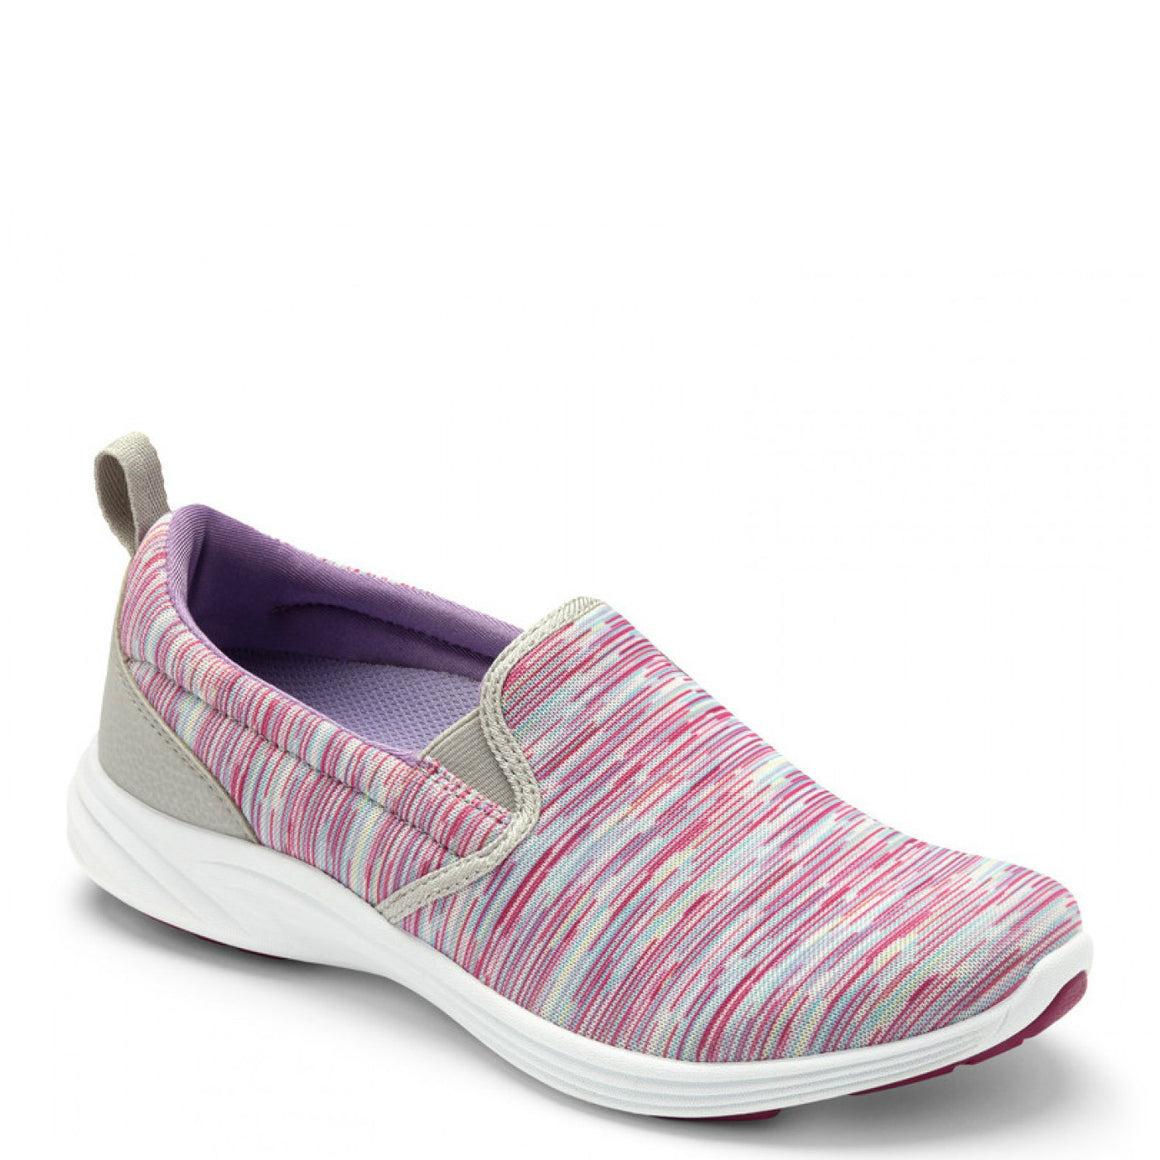 Vionic Women's Kea Slip-On Sneaker - Berry Multi 336KEA